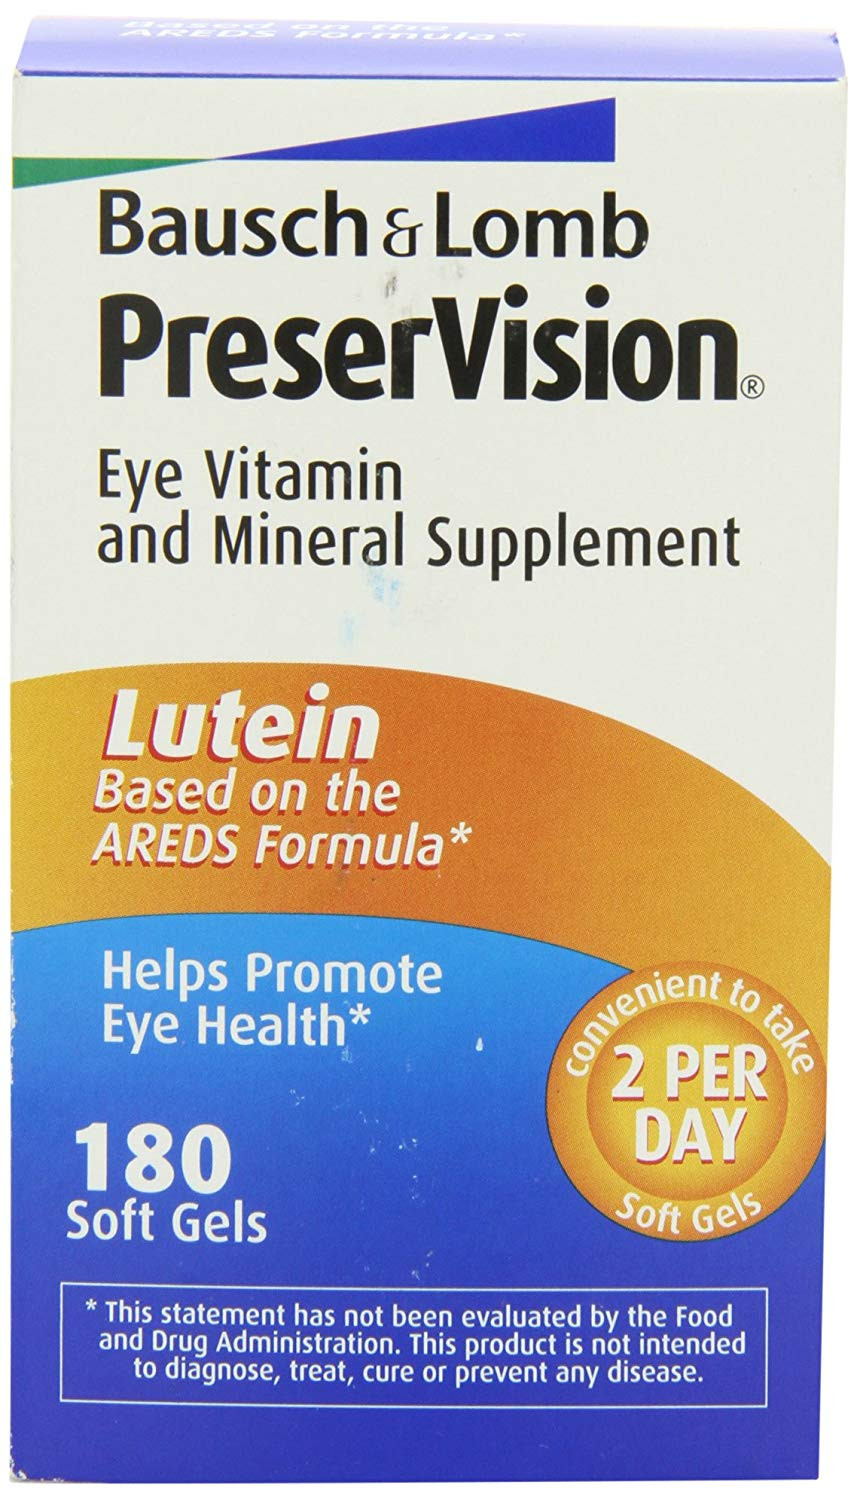 Bausch & Lomb Preservision Eye Vitamin and Mineral Supplement with Lutein - 180 Softgels